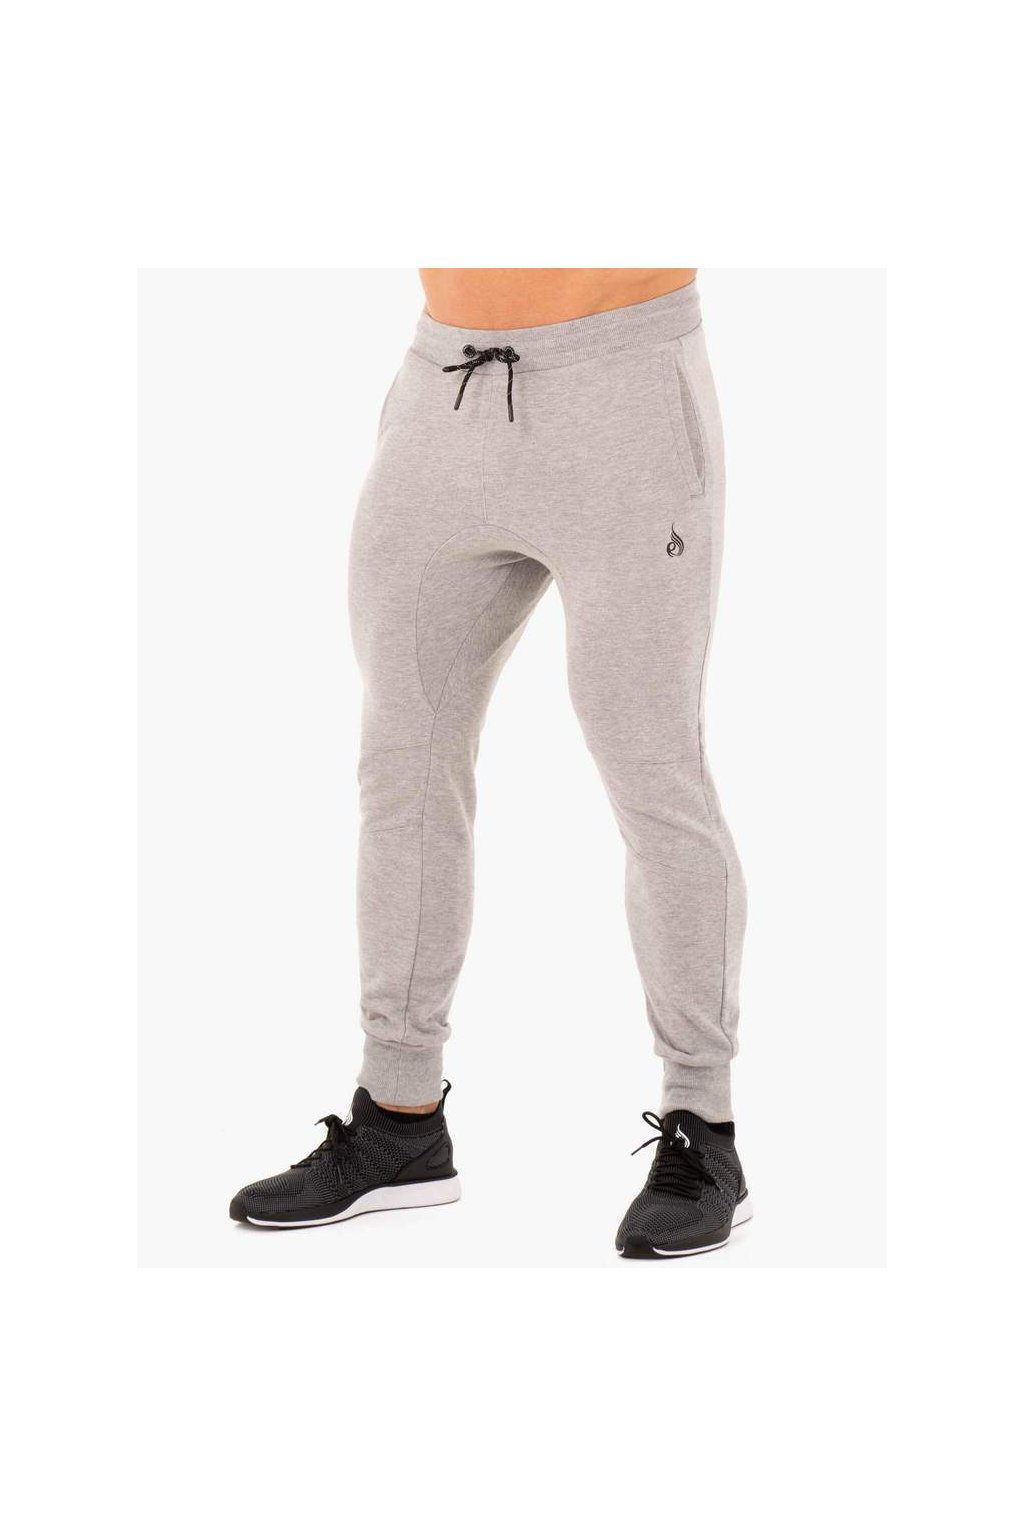 ATHLETICFLEECETRACKPANTS GREYMARL 1 1000x1000